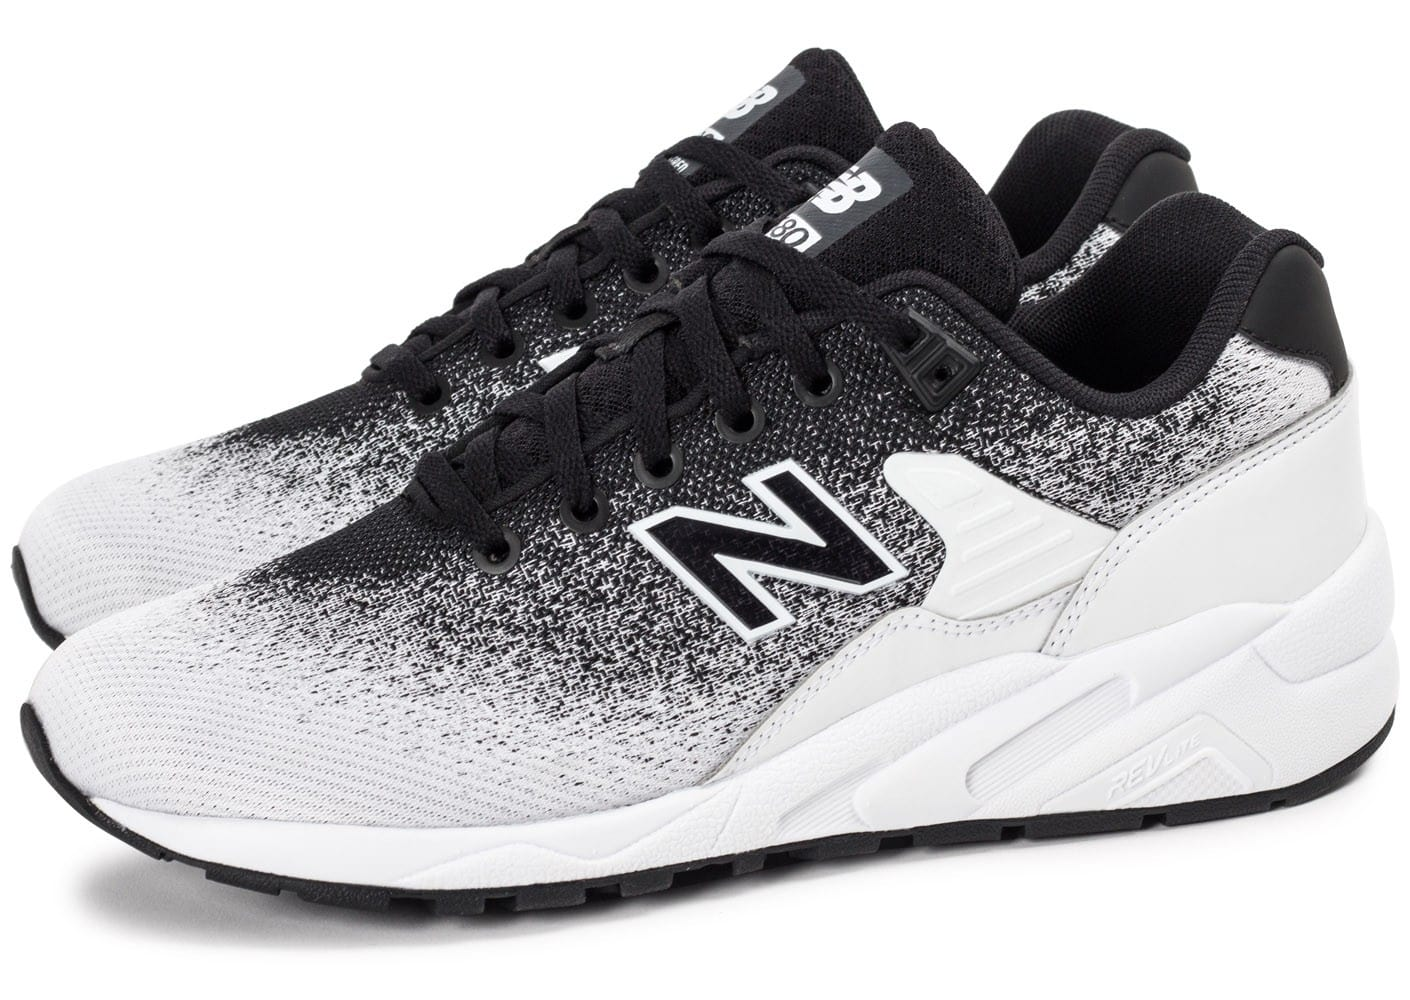 New Balance 580 Homme Blanche